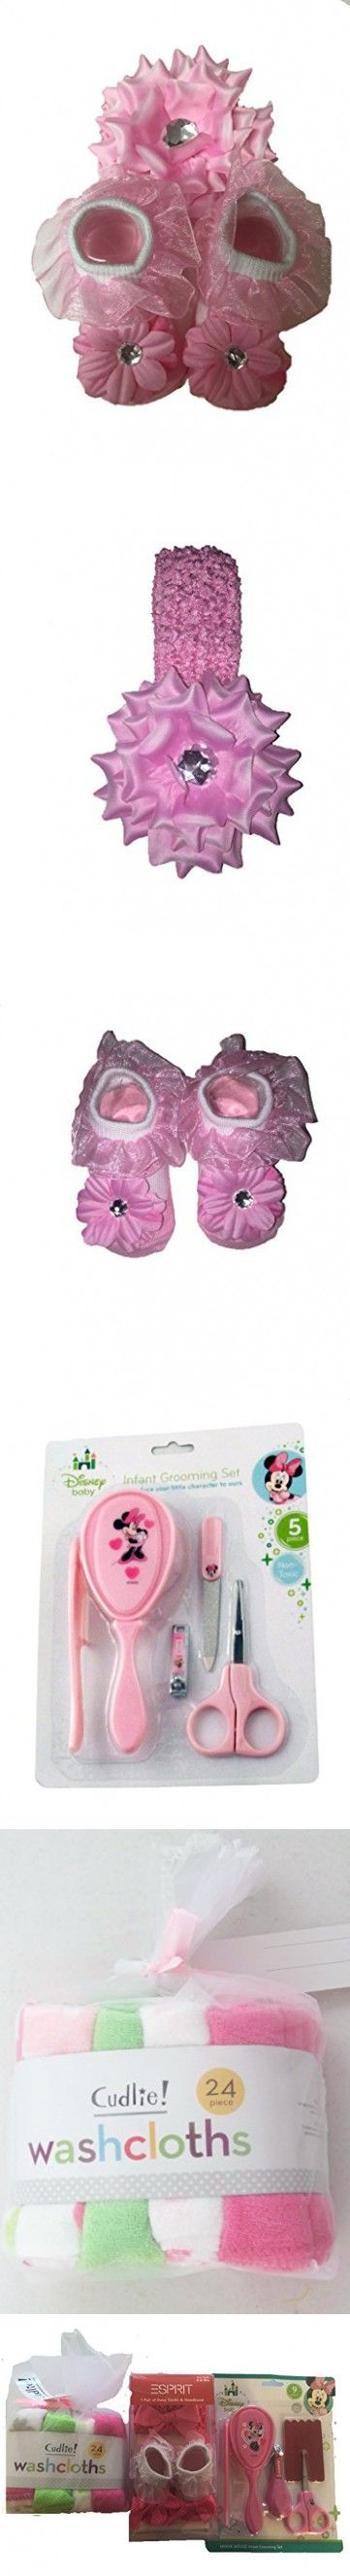 Baby Girl Bath Gift Set With Botties Socks And Flower Bow, Washcloths And Minnie Mouse Grooming Kit